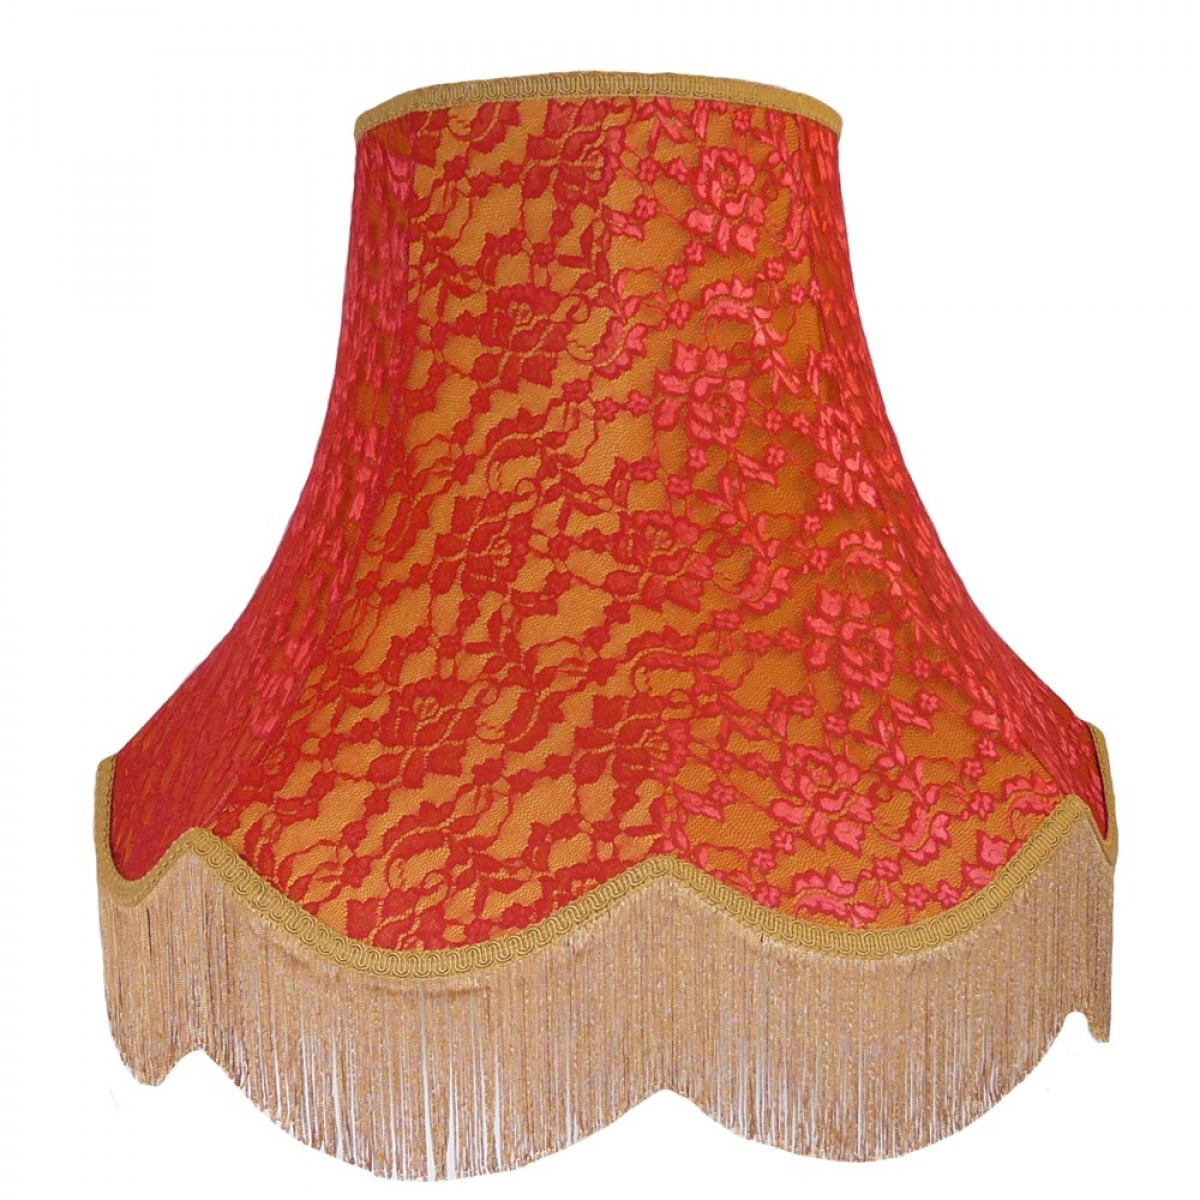 Gold And Red Lace Lampshade